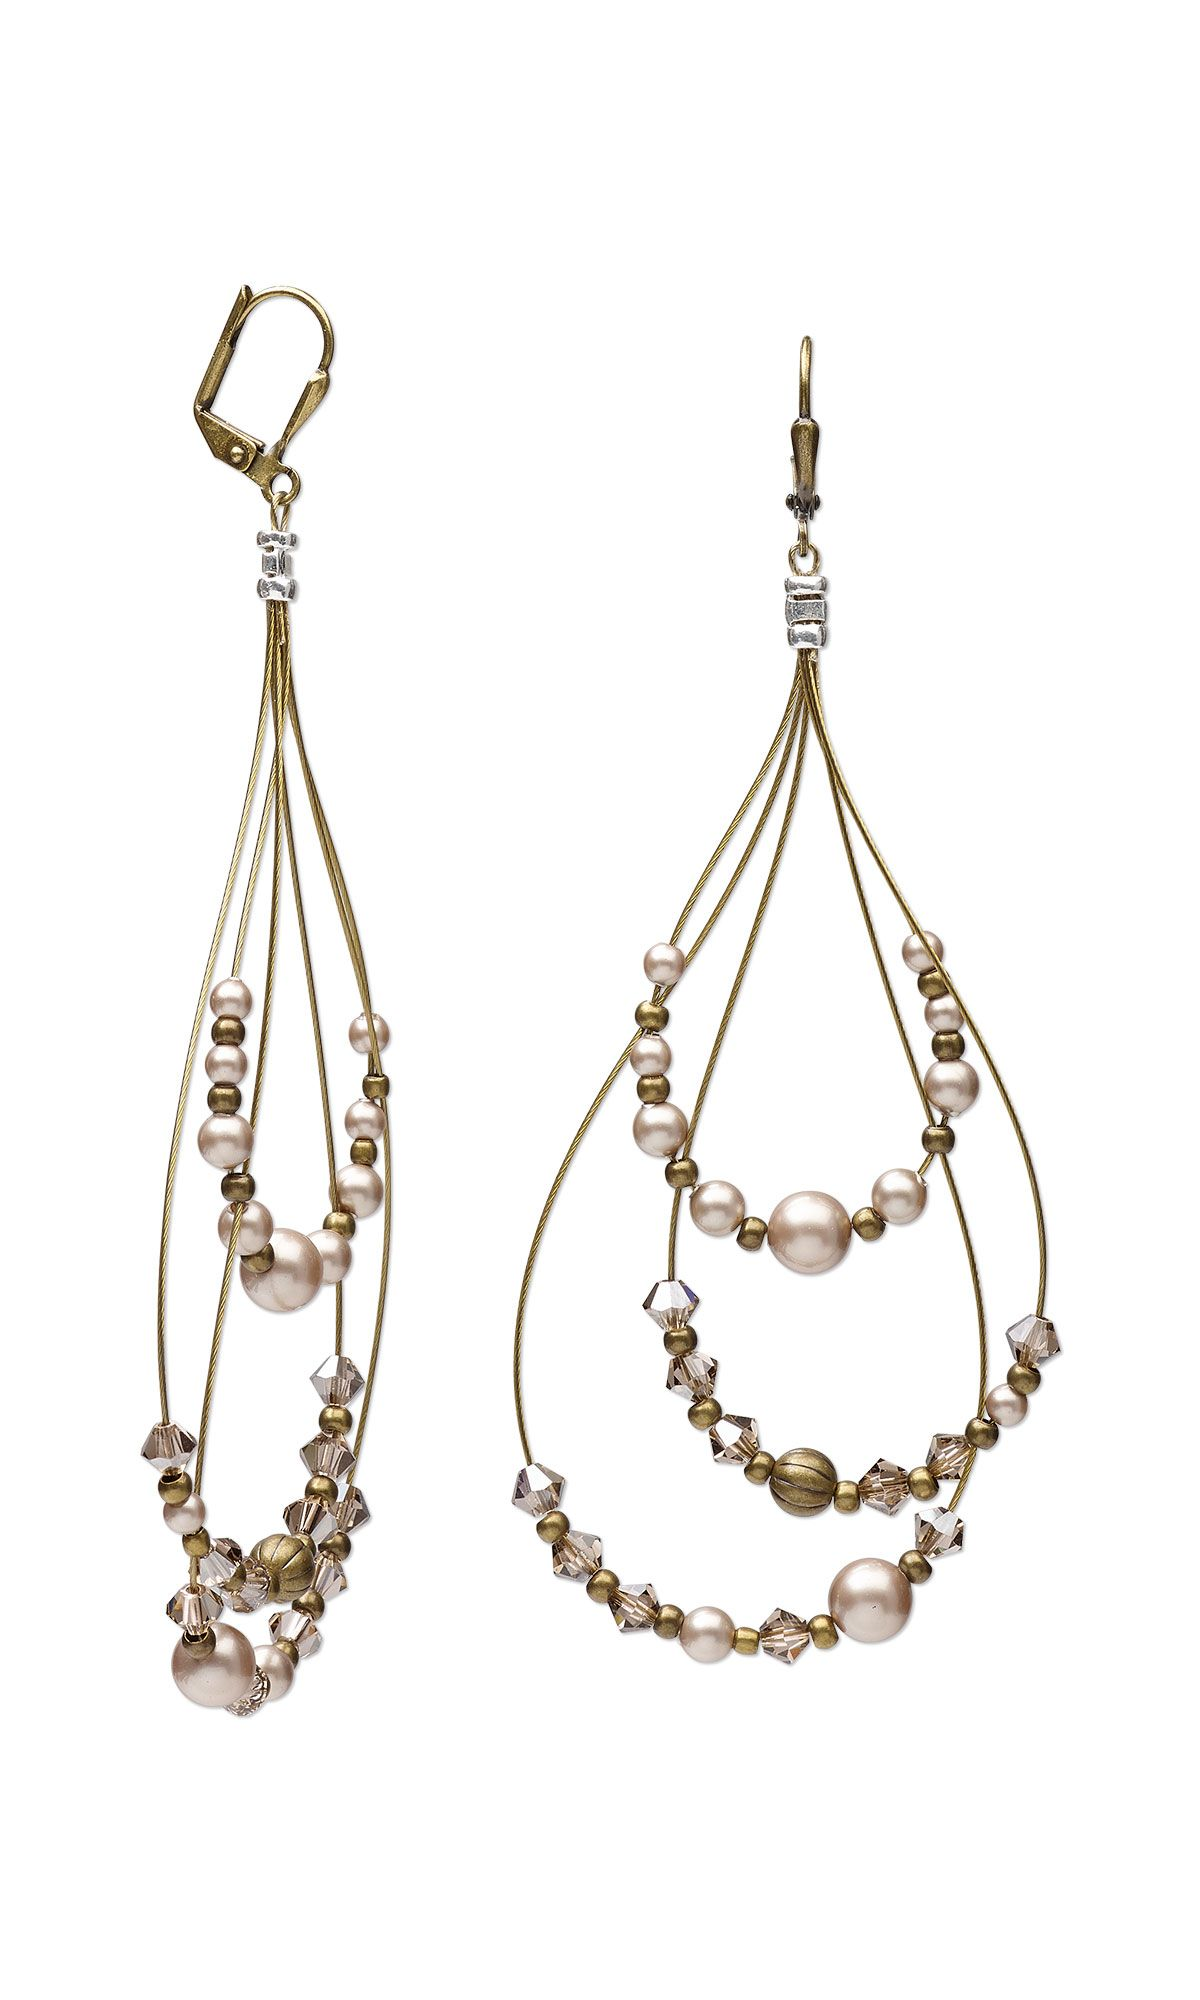 Jewelry Design - Earrings with Swarovski Crystal, Antiqued Gold ...